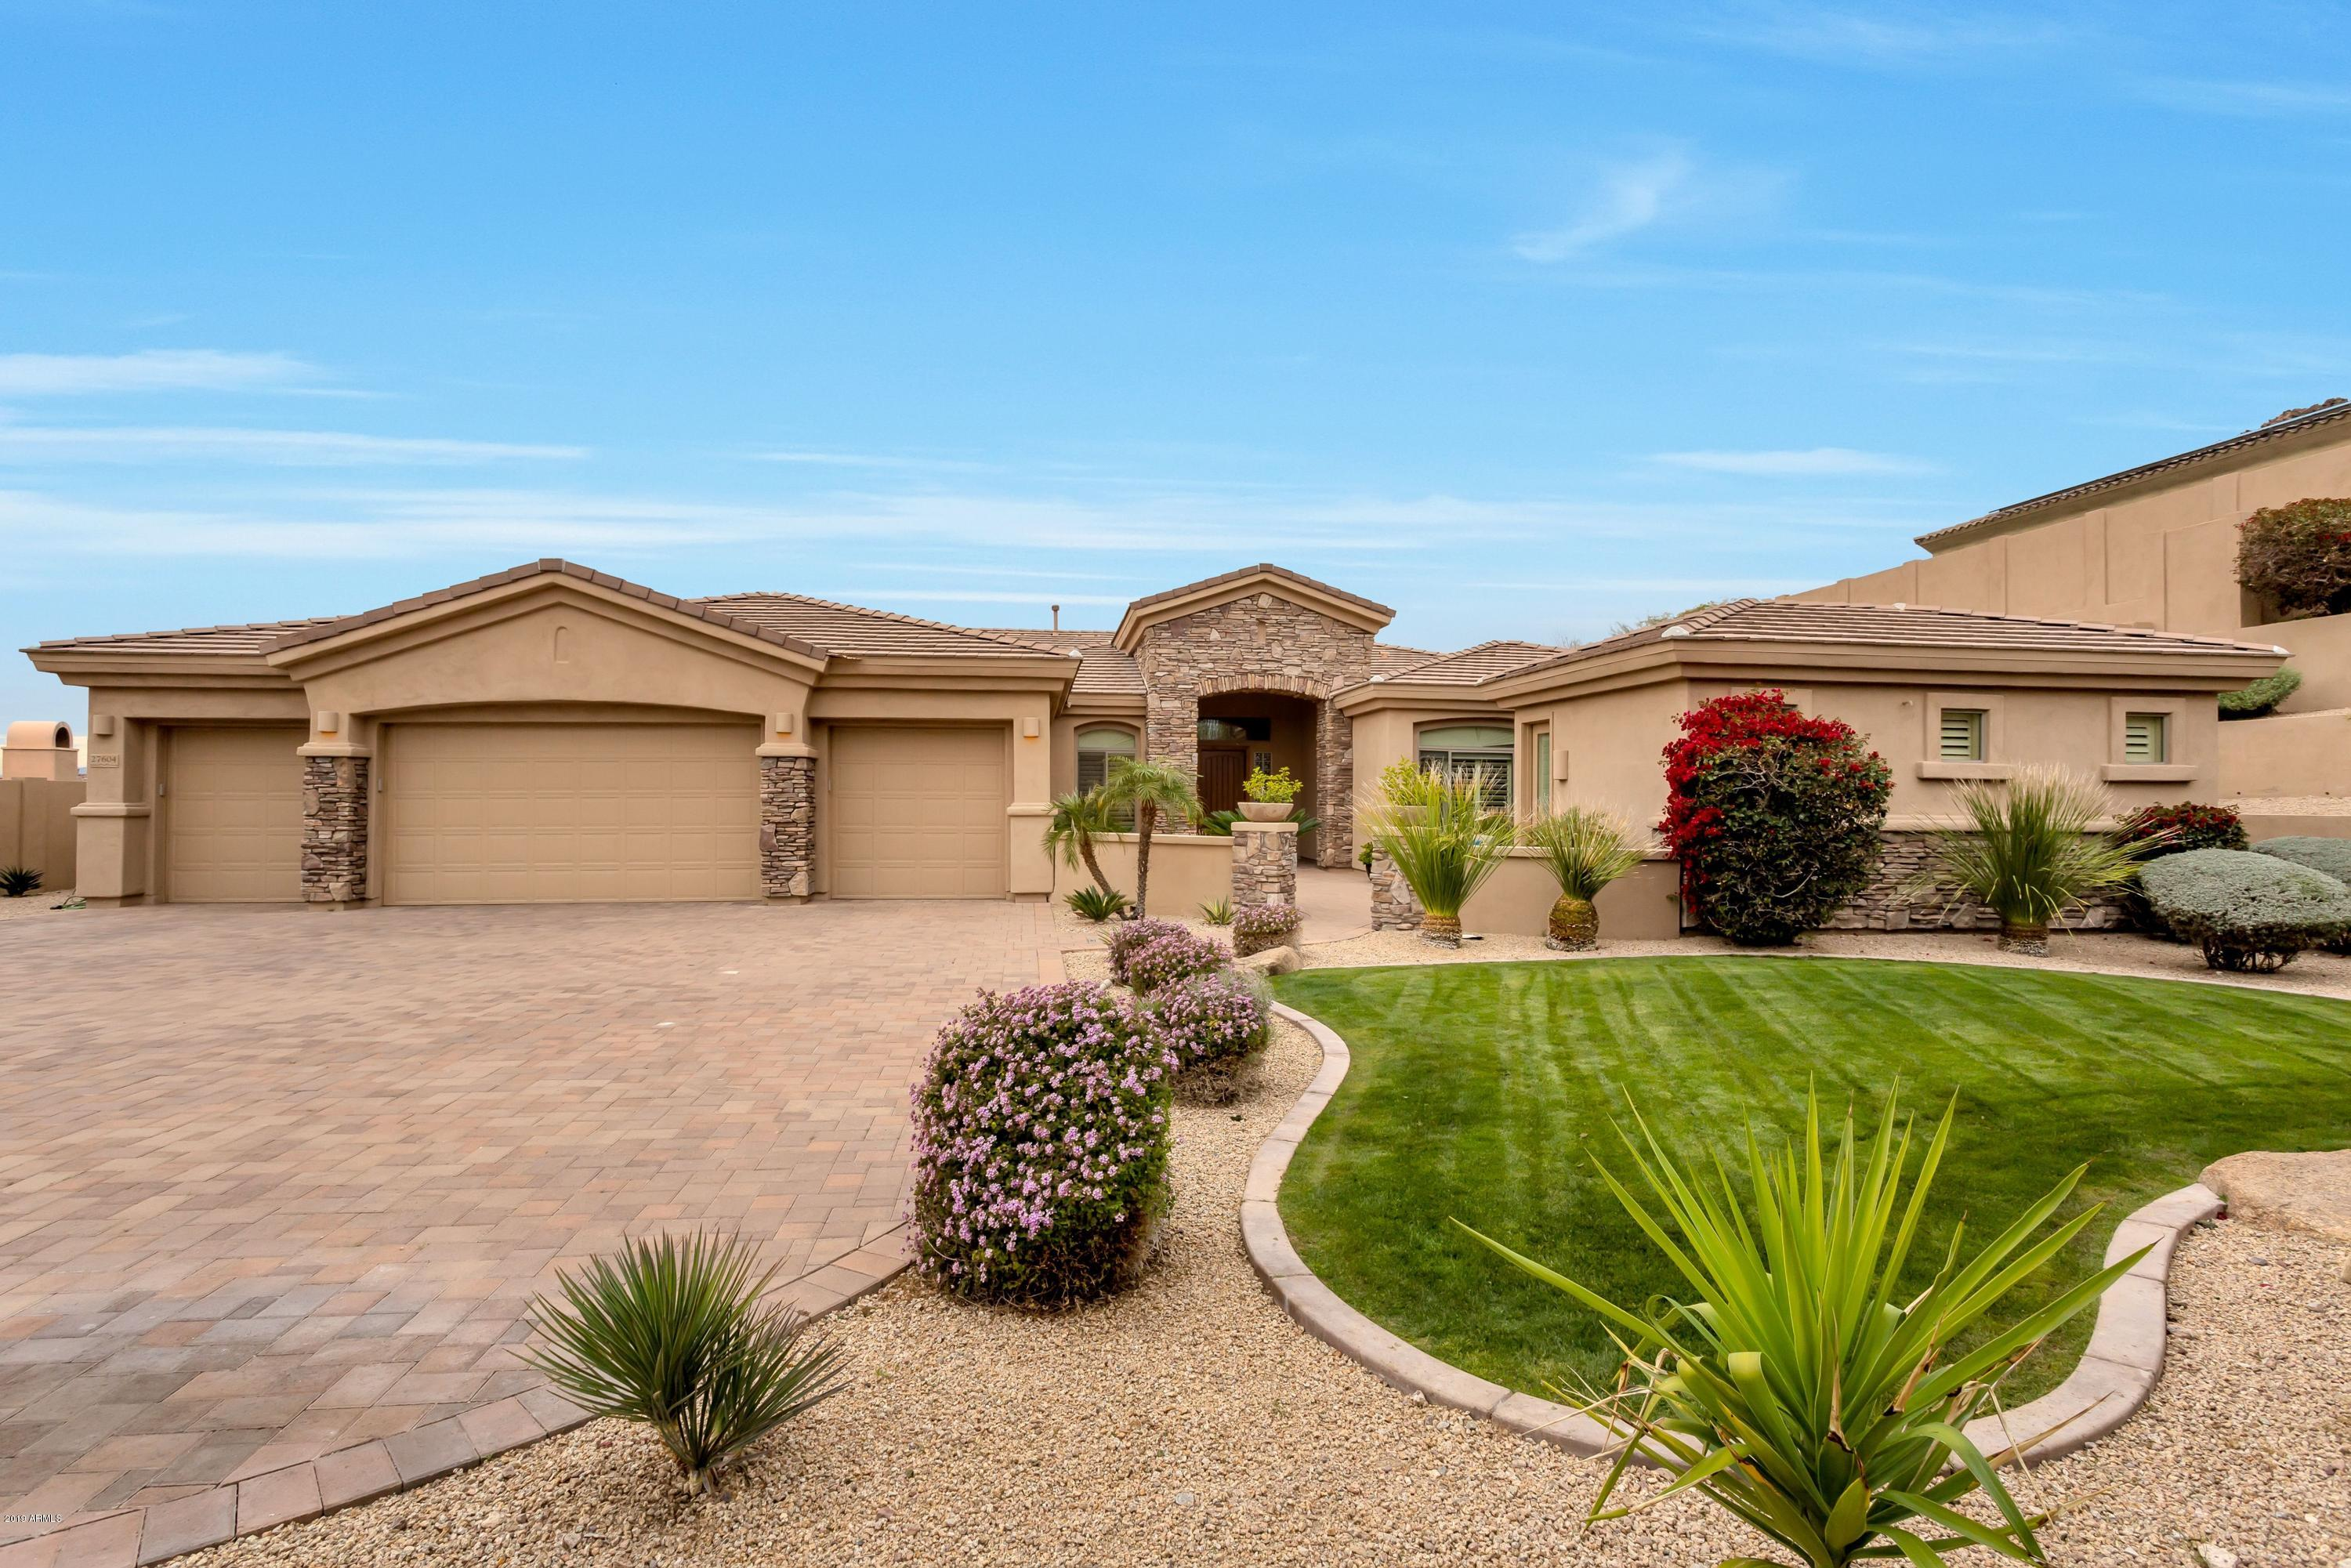 Photo of 27604 N 85TH Drive, Peoria, AZ 85383